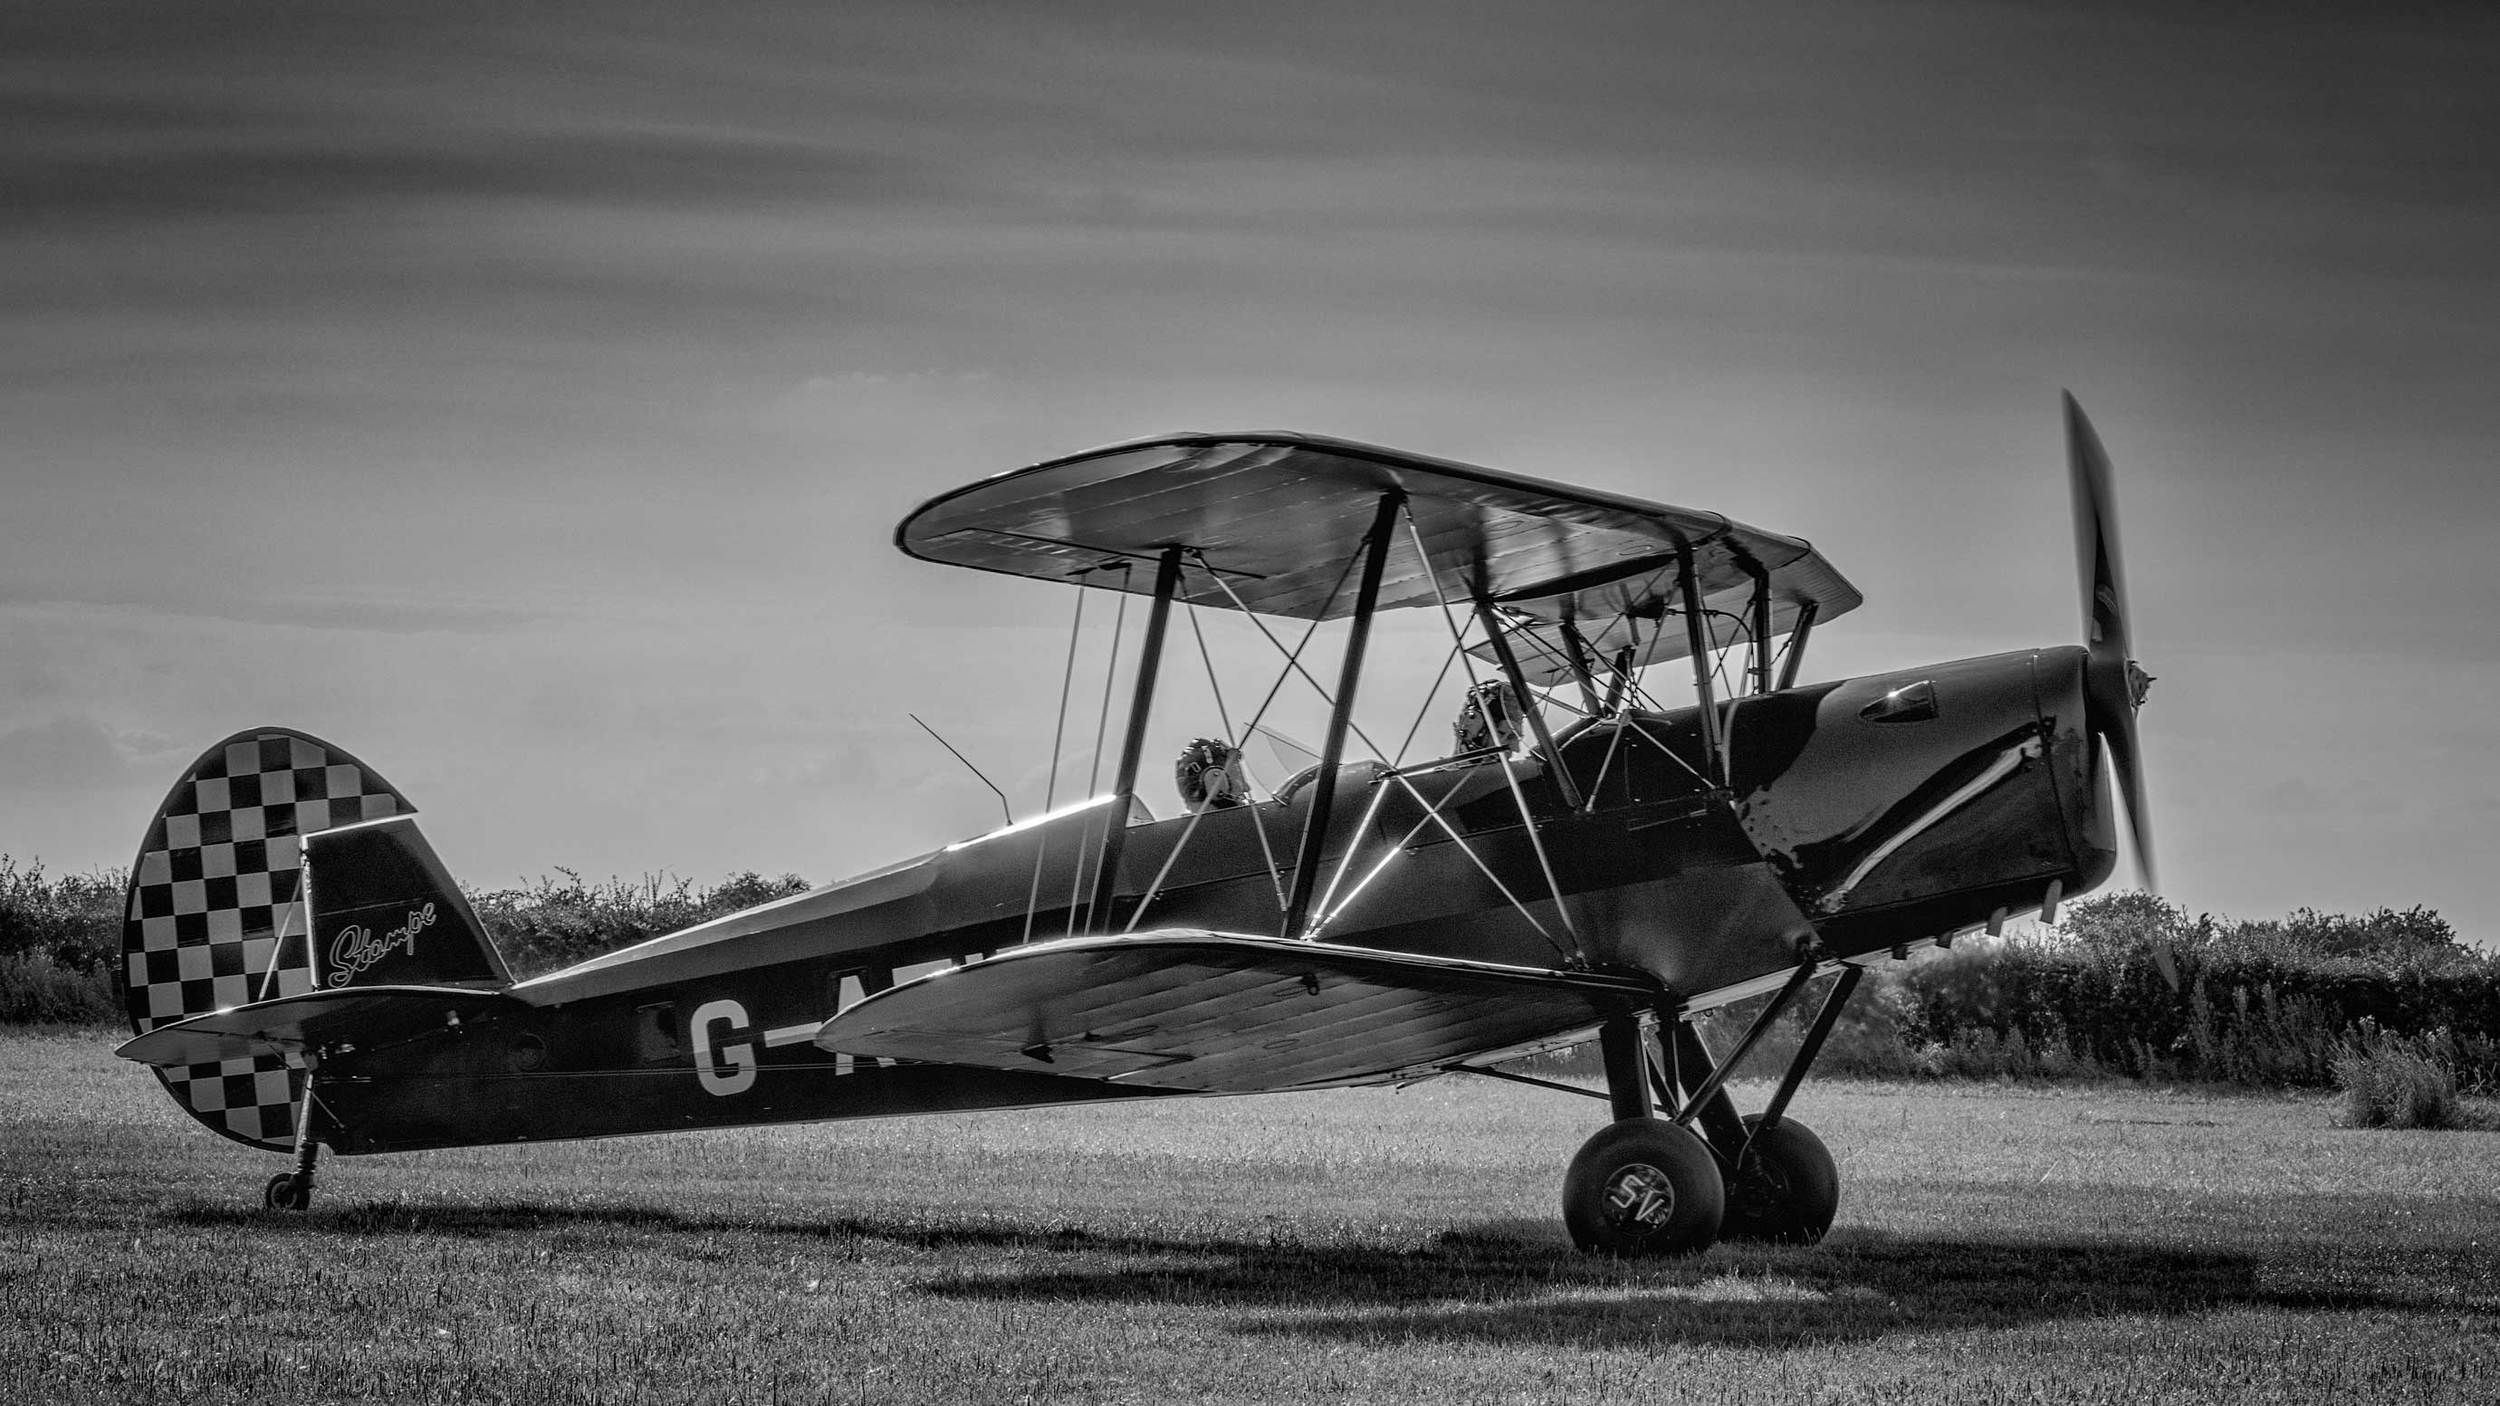 I usually find that aircraft photographs either look better in black and white or color, based on the personality of the aircraft and story I'm trying to tell.... but this Stampe is the exception and looks gorgeous in both!